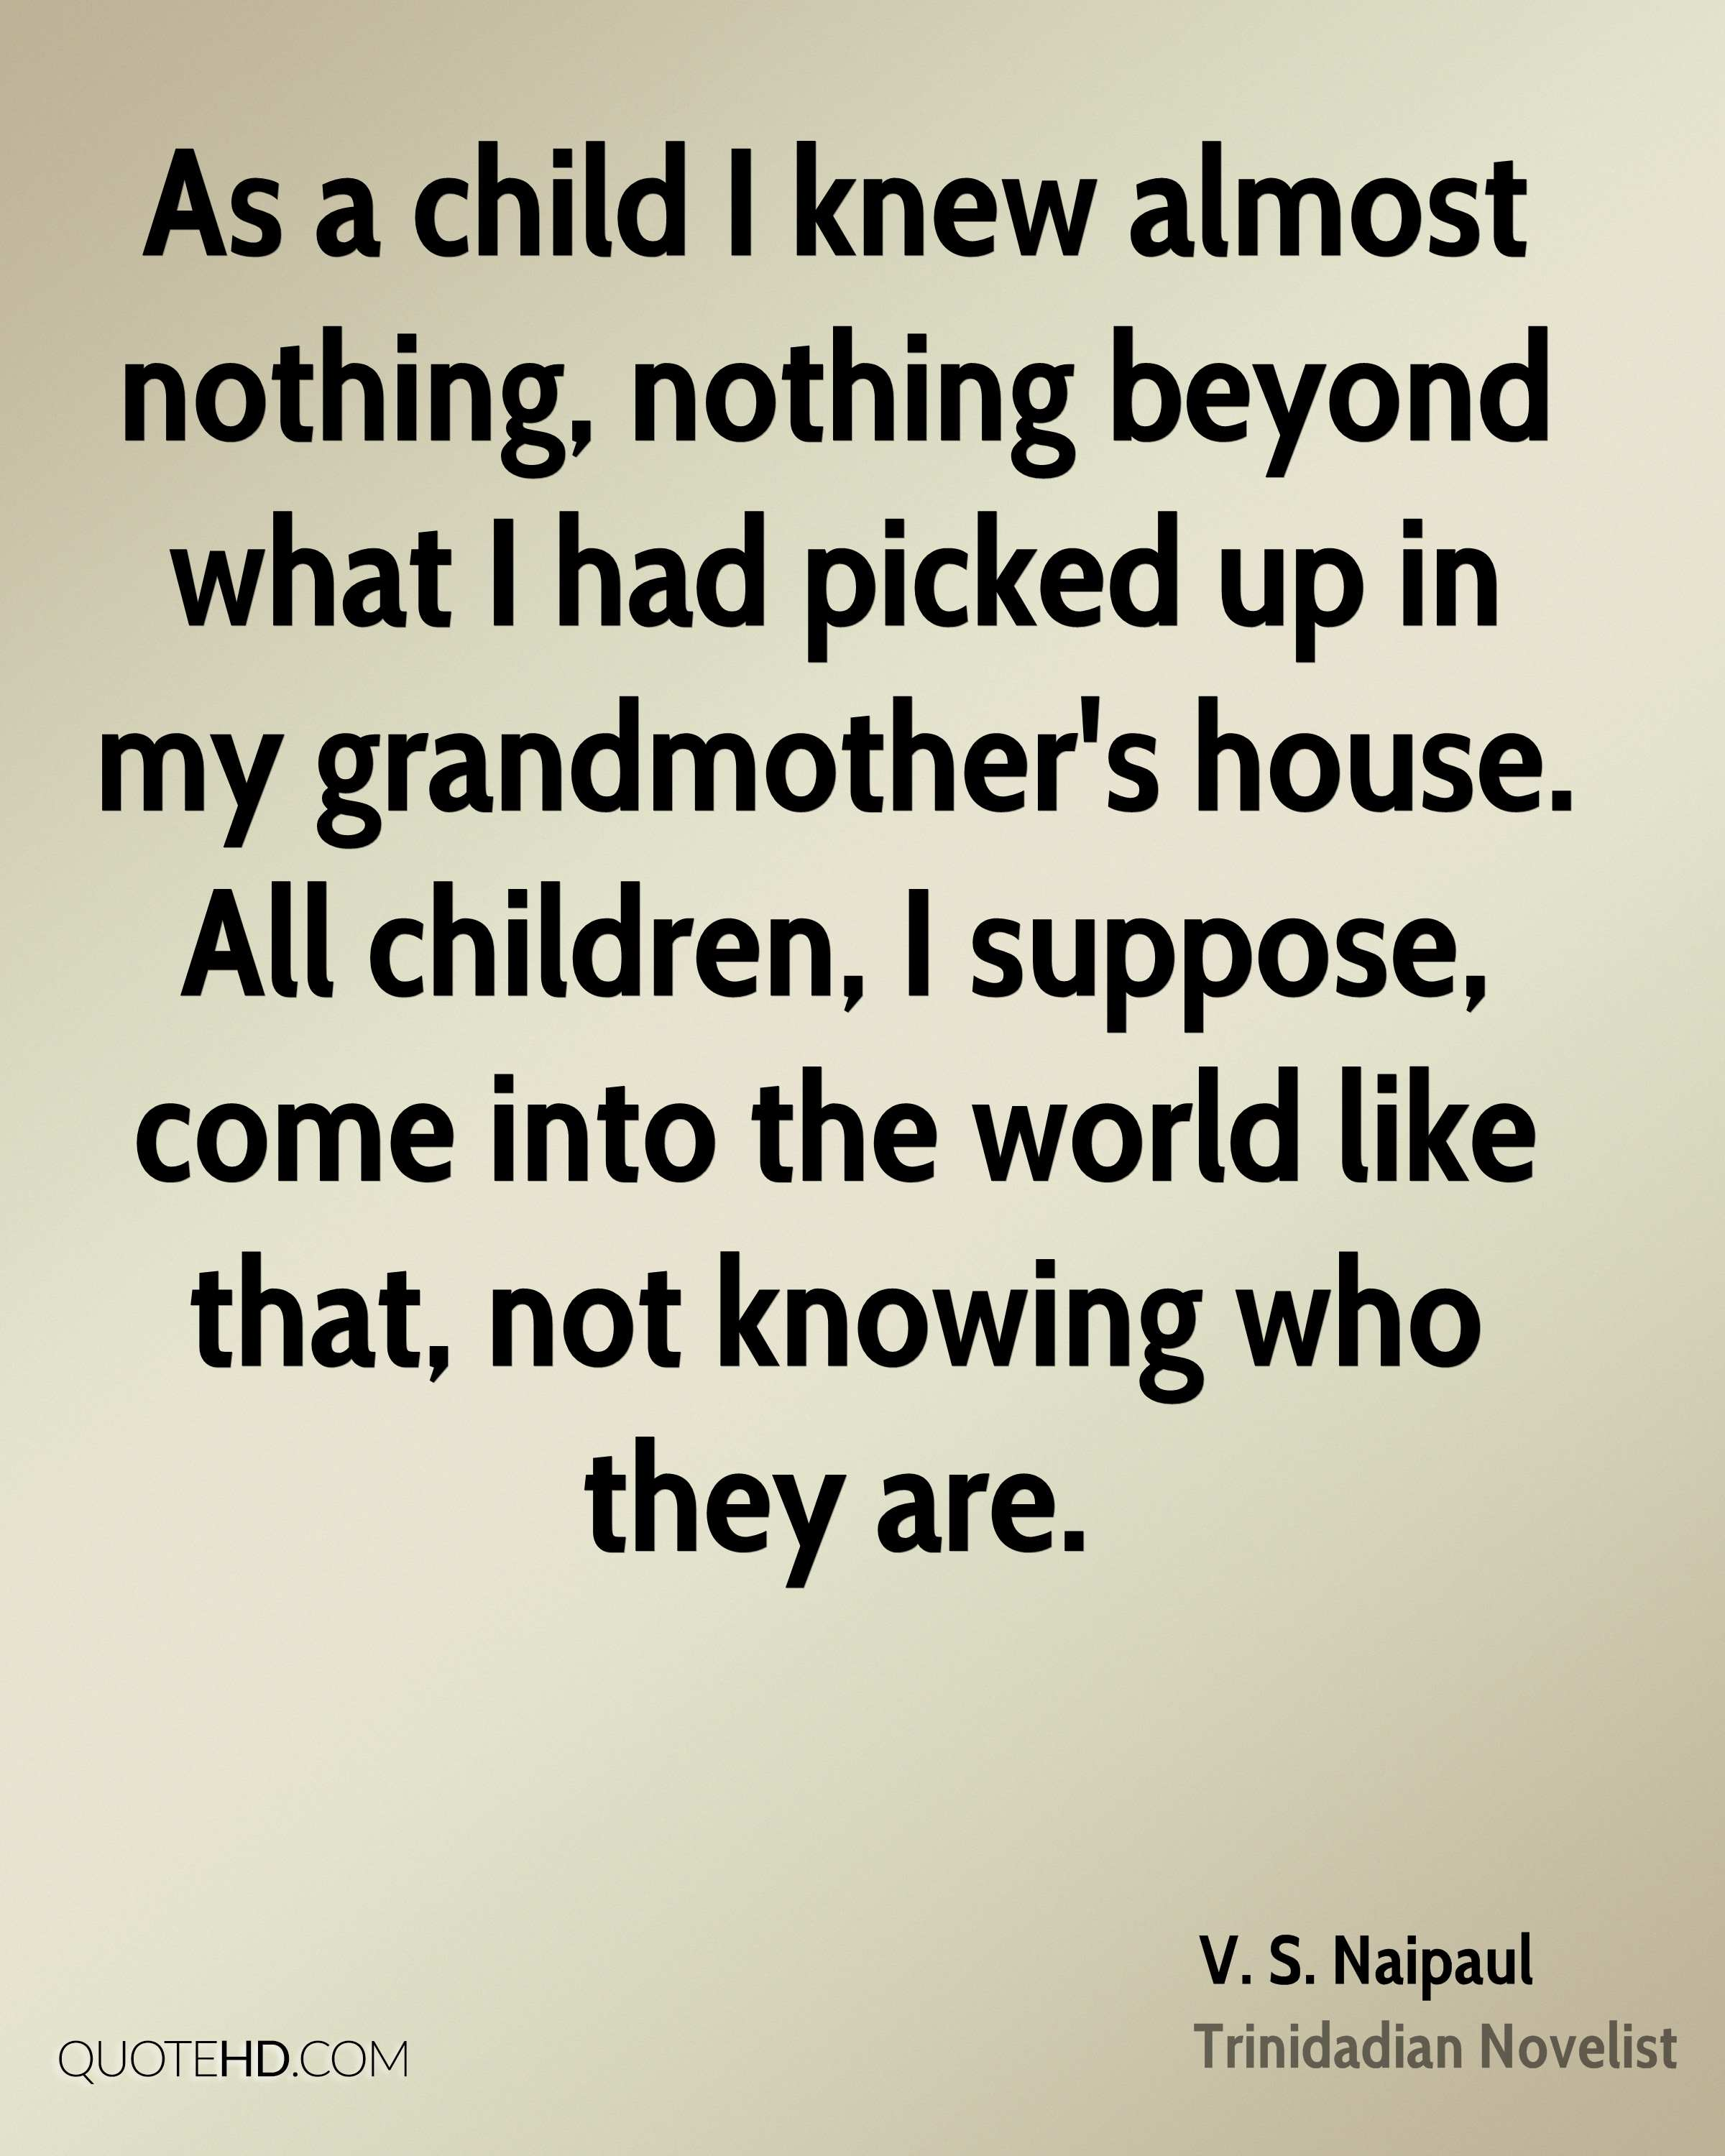 As a child I knew almost nothing, nothing beyond what I had picked up in my grandmother's house. All children, I suppose, come into the world like that, not knowing who they are.